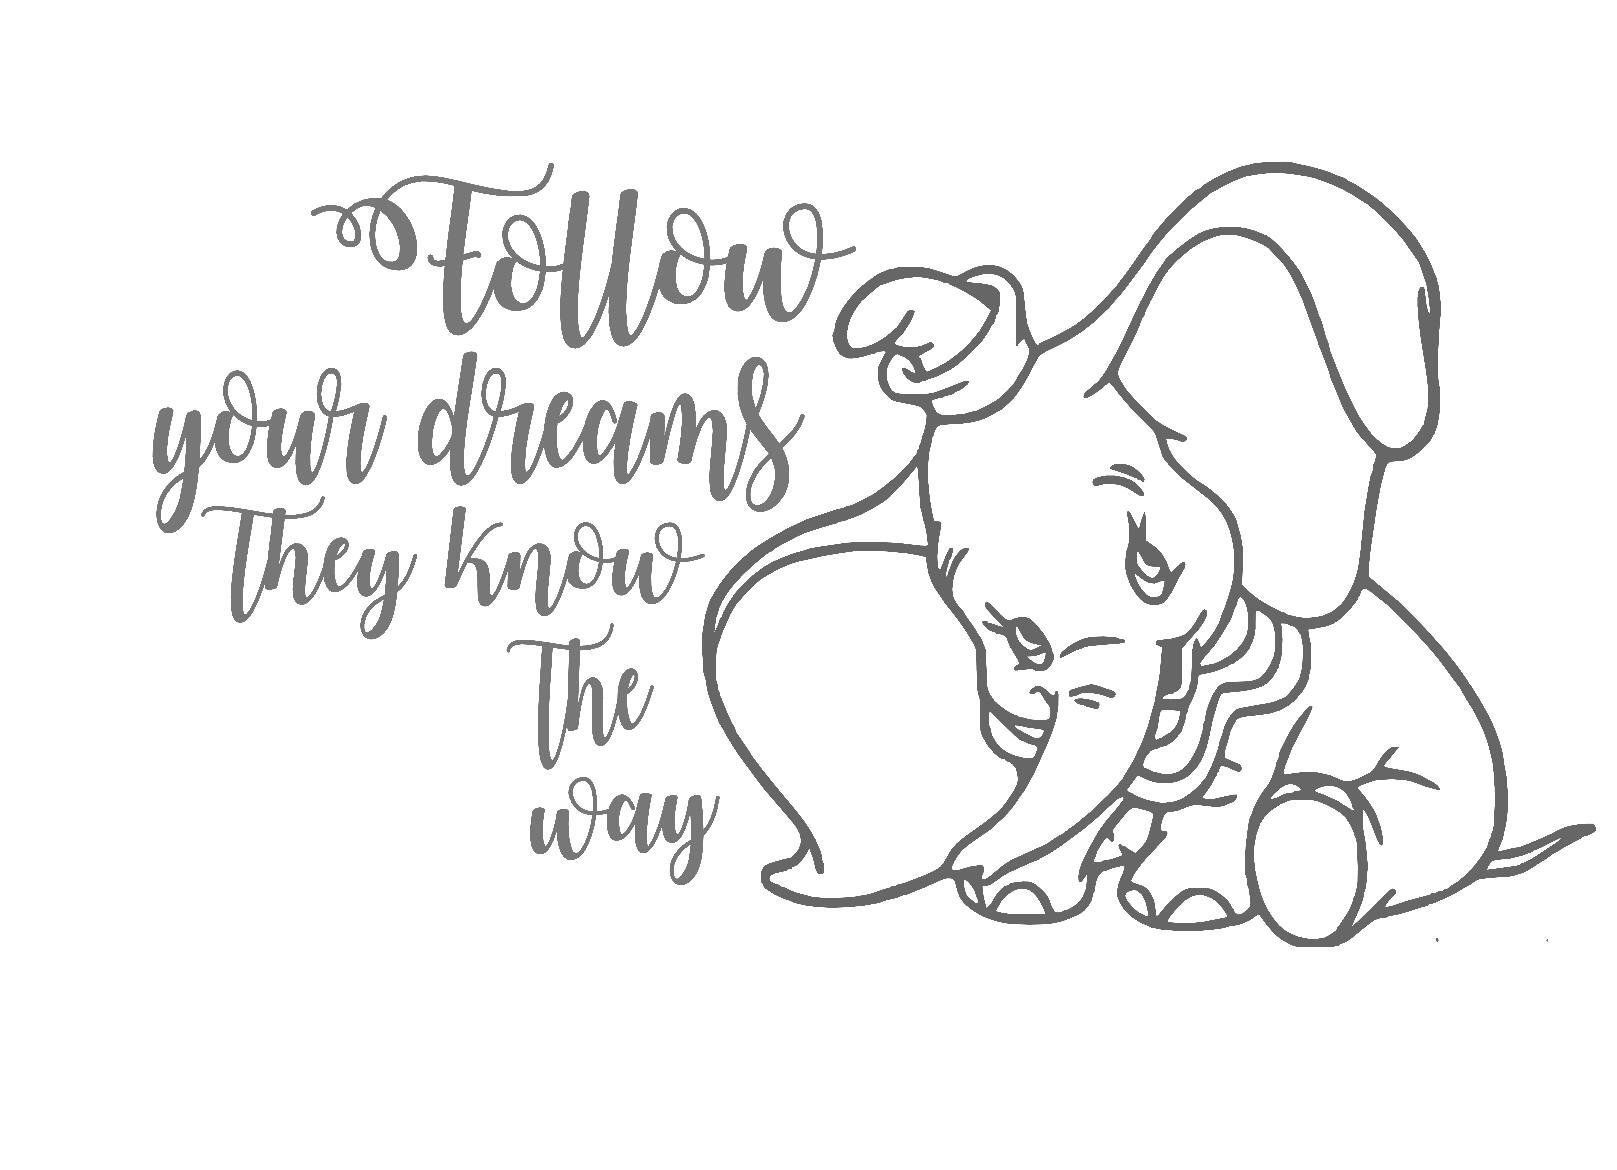 The very things that hold you down dumbo meaning clipart png Pin by Nicla Dolar on Disney | Disney quotes, Disney dream ... png